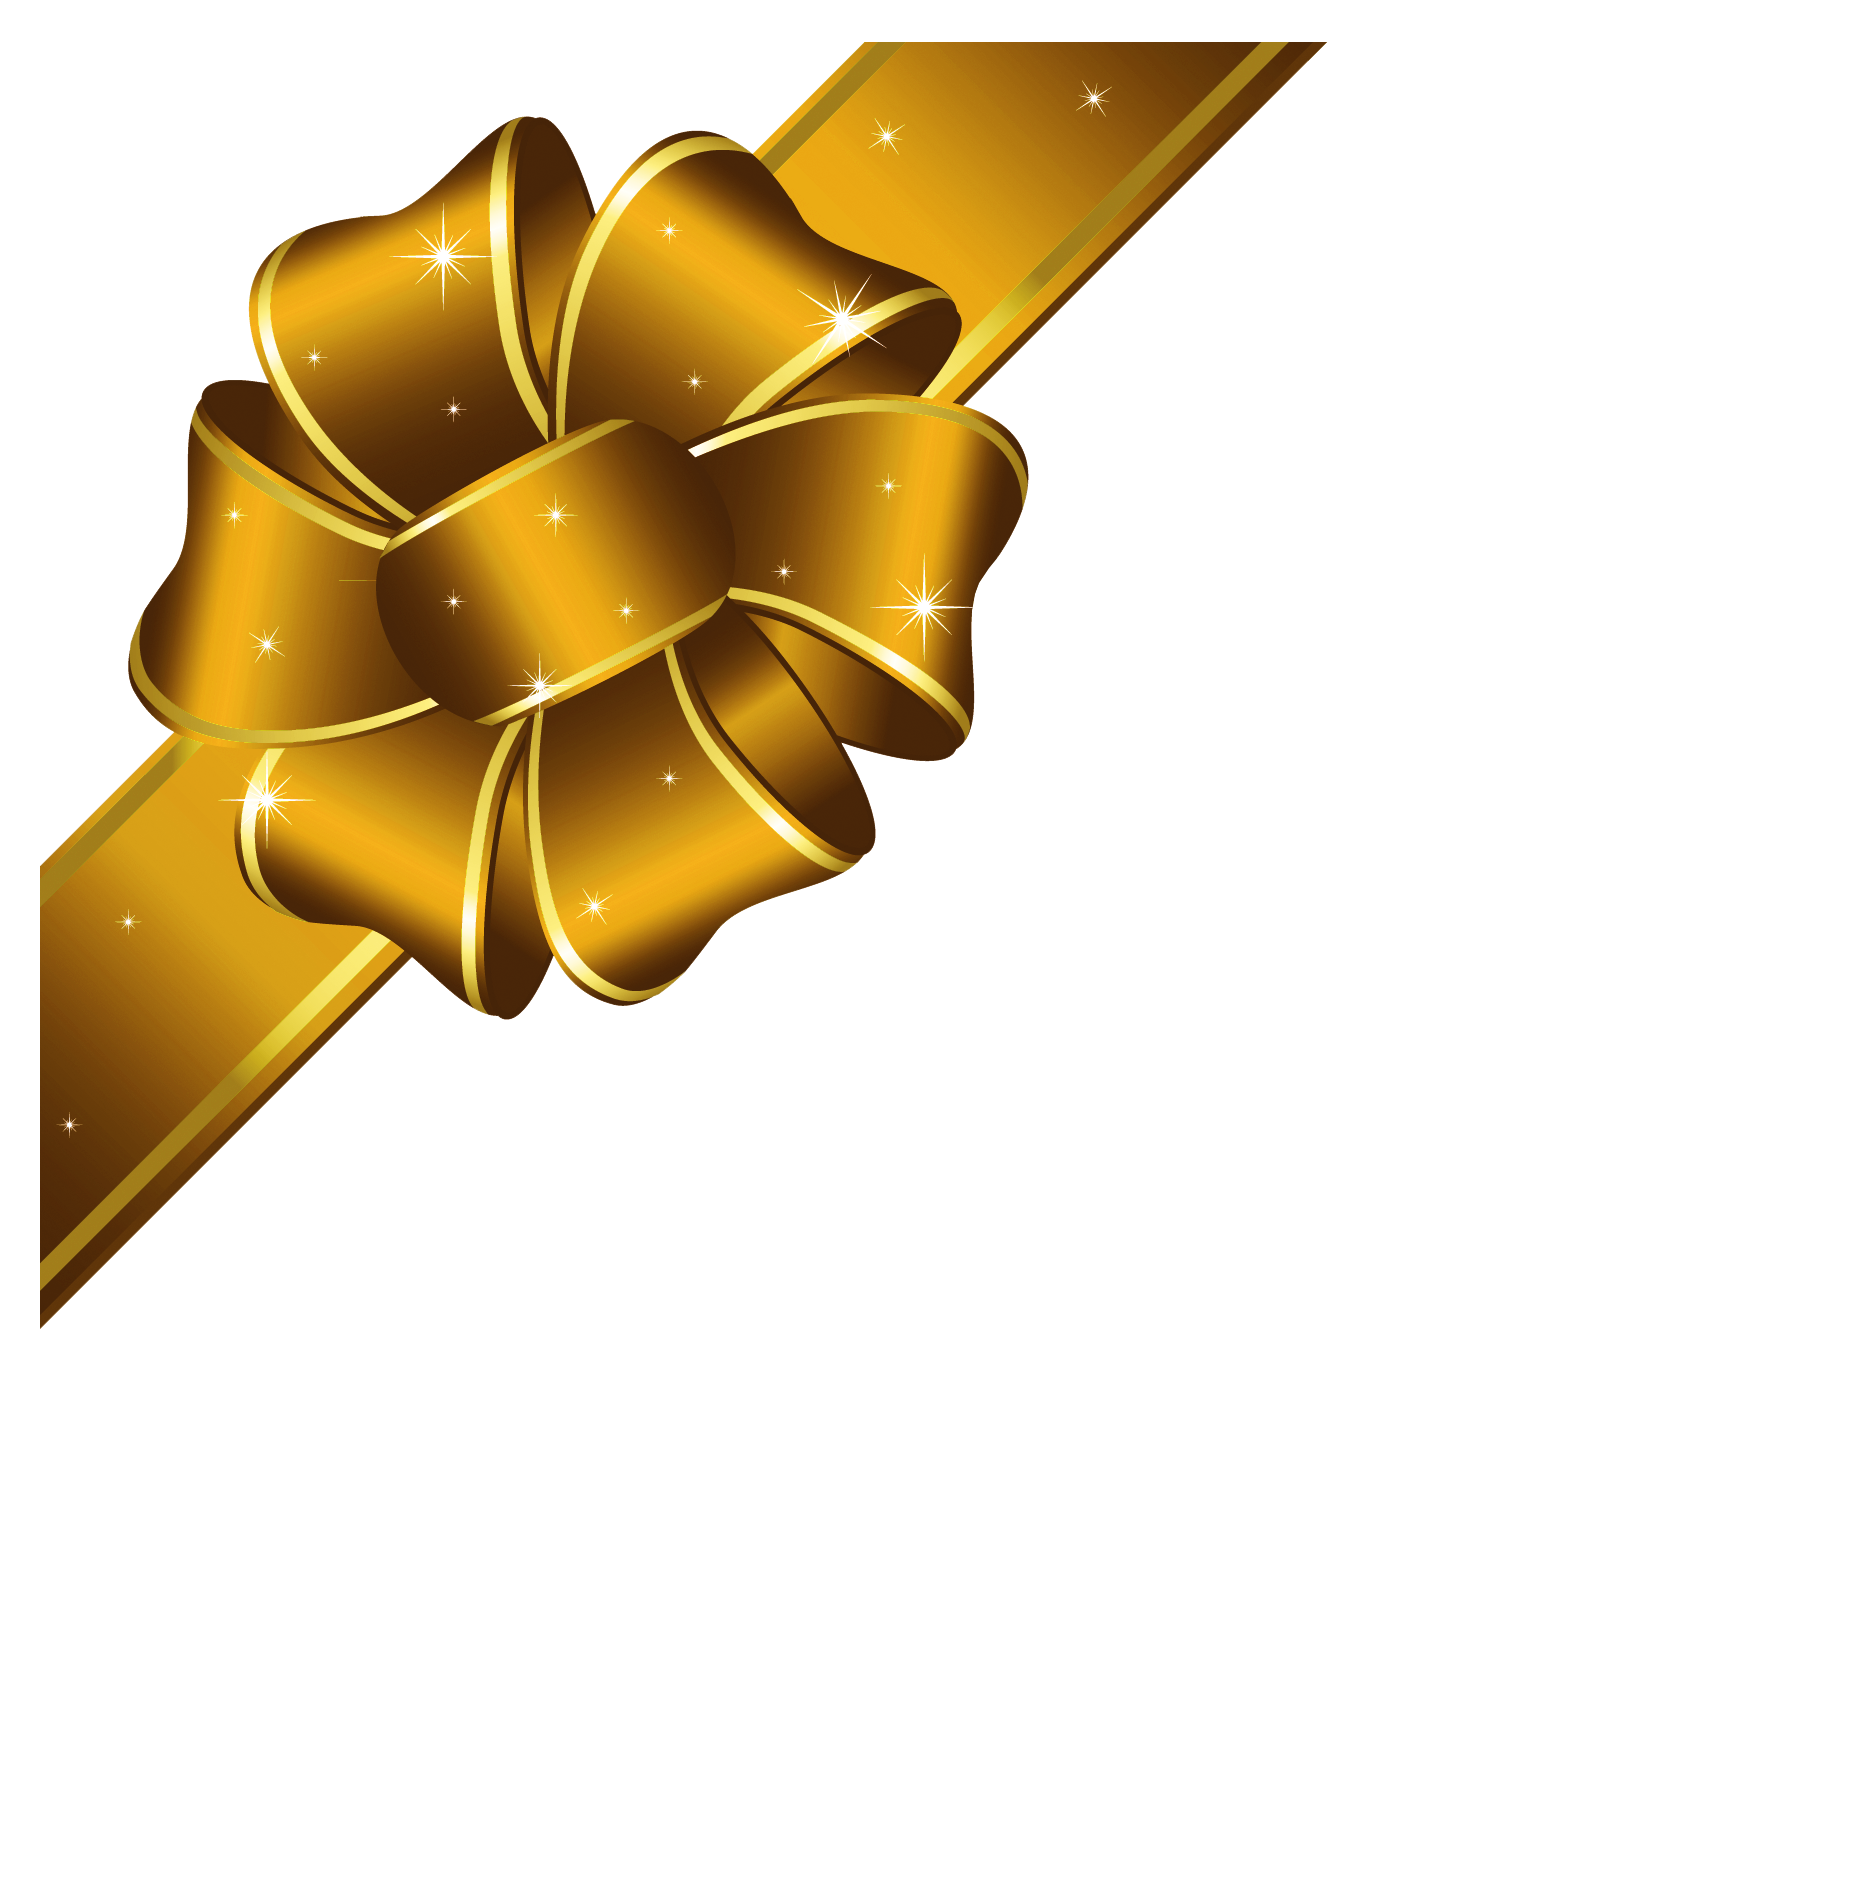 holly clipart gold